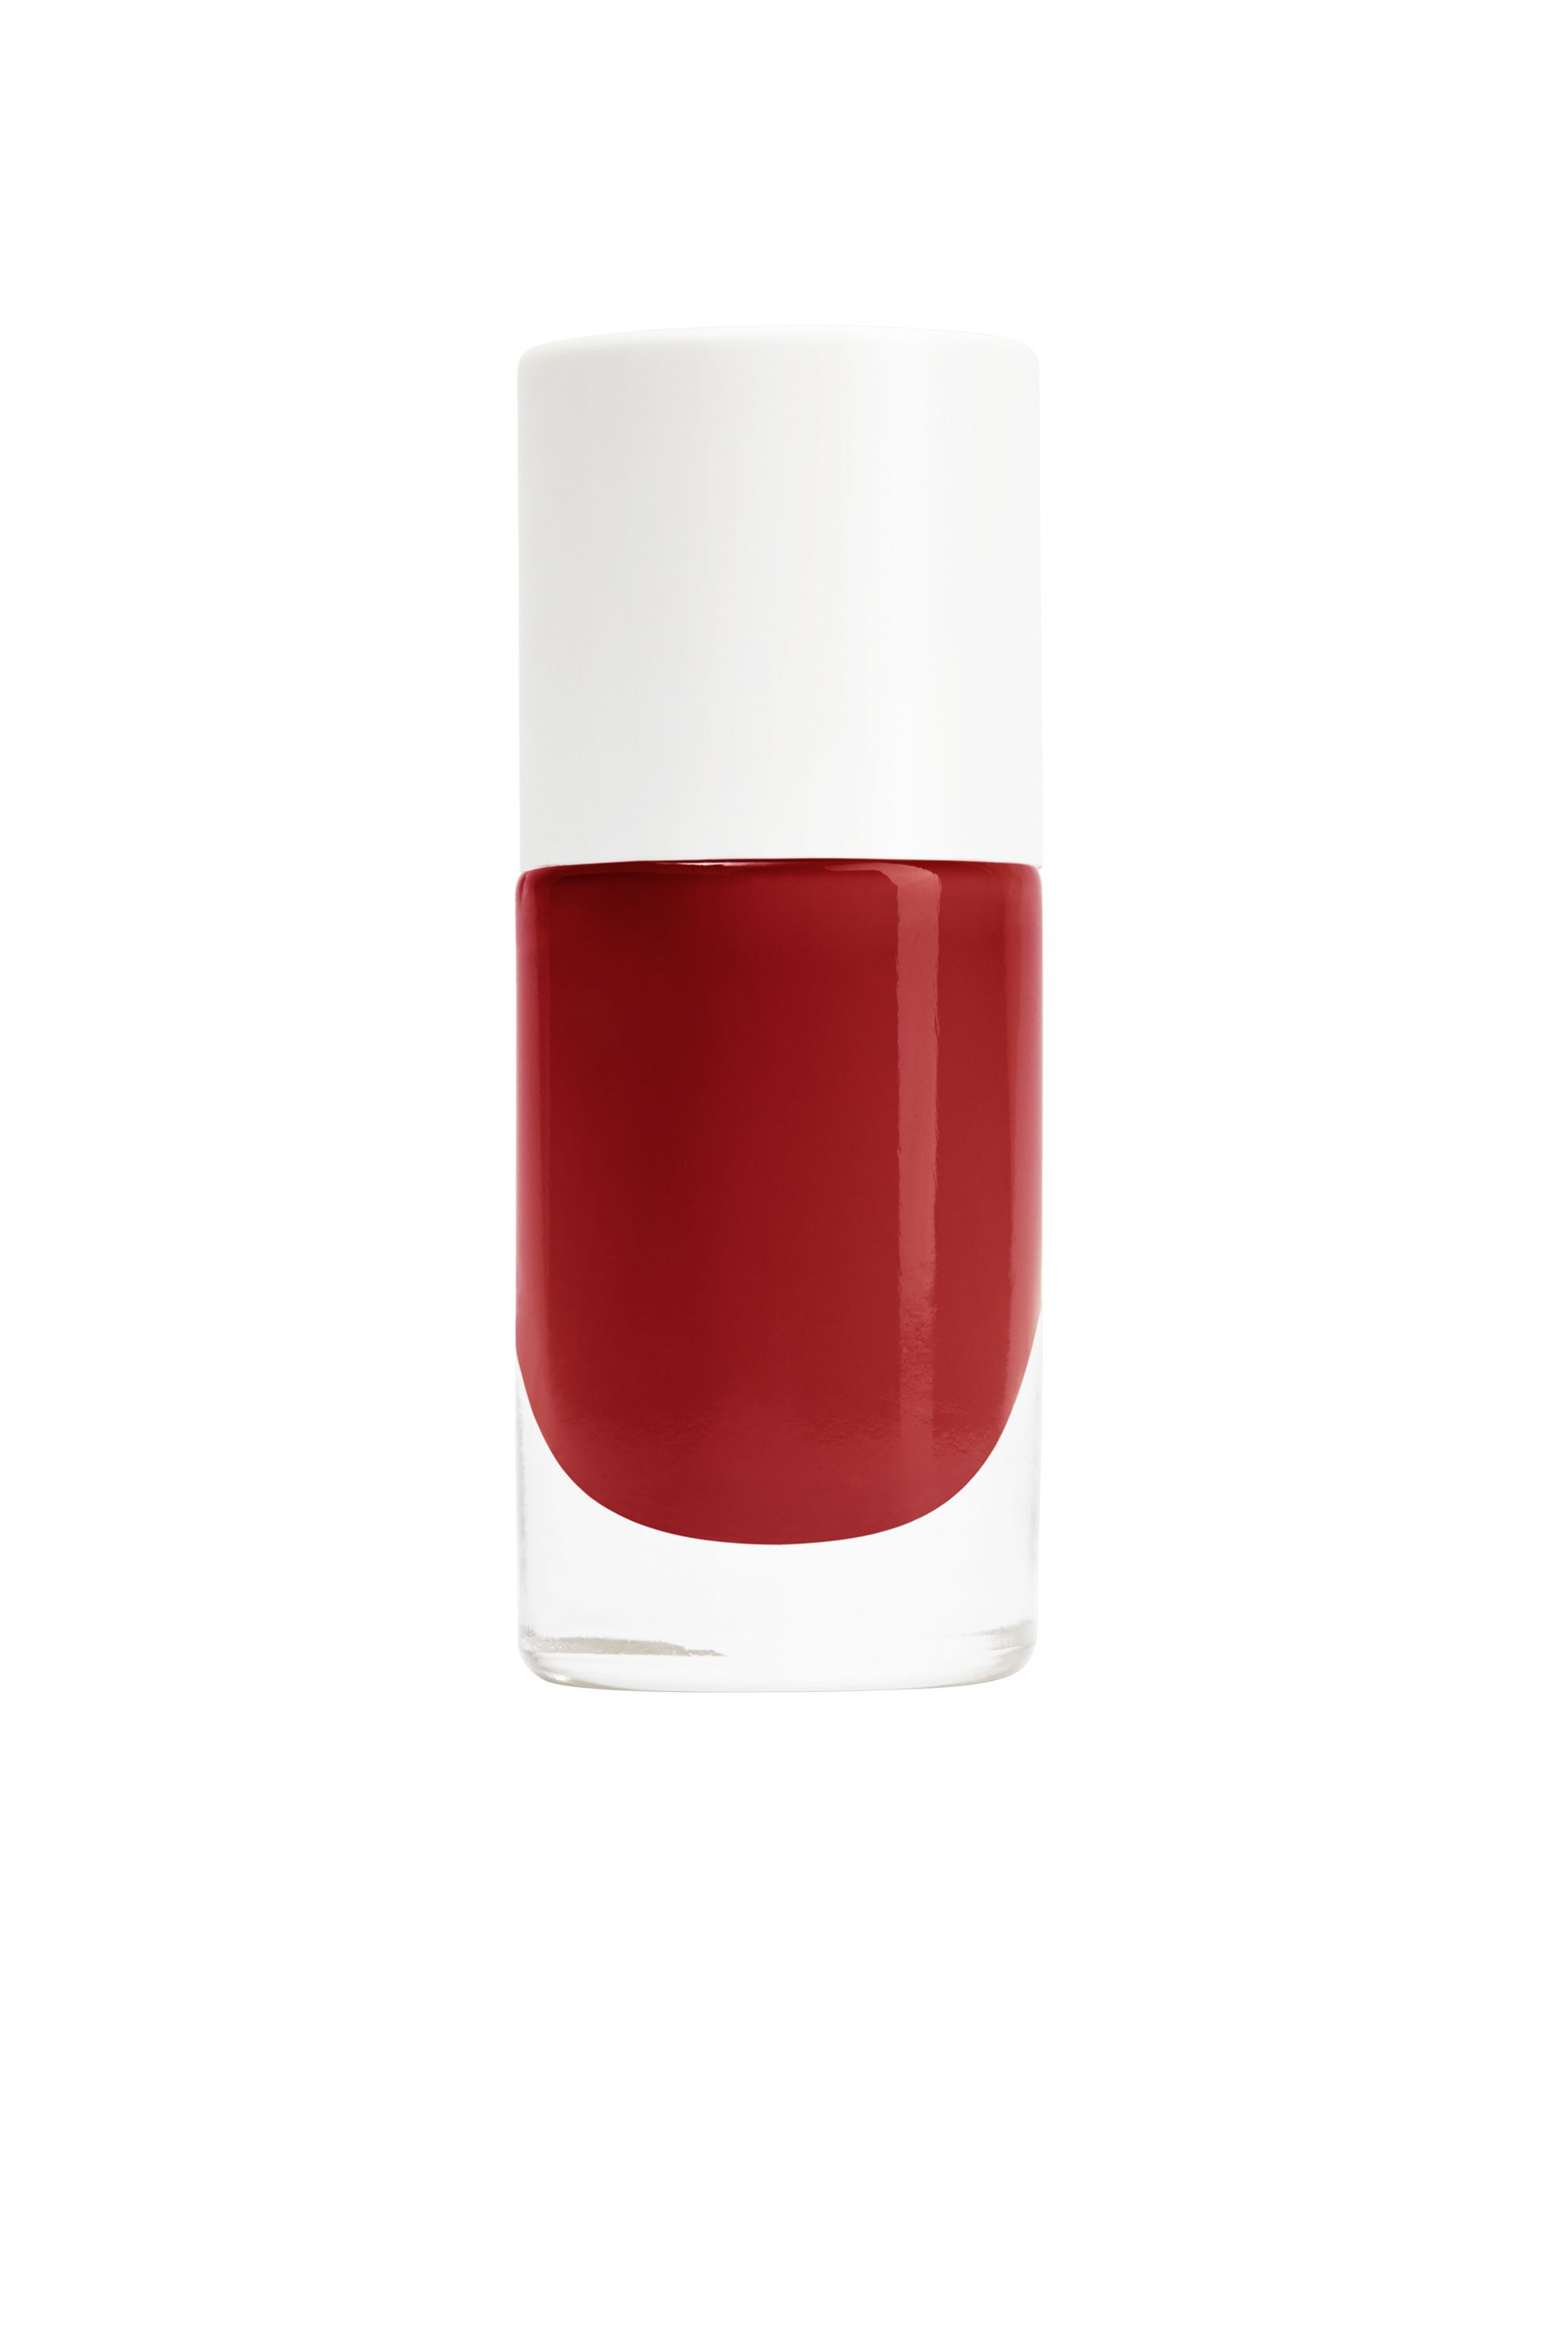 Blissim : Nailmatic - Vernis à ongles Pure Color - Pure Color Marilou